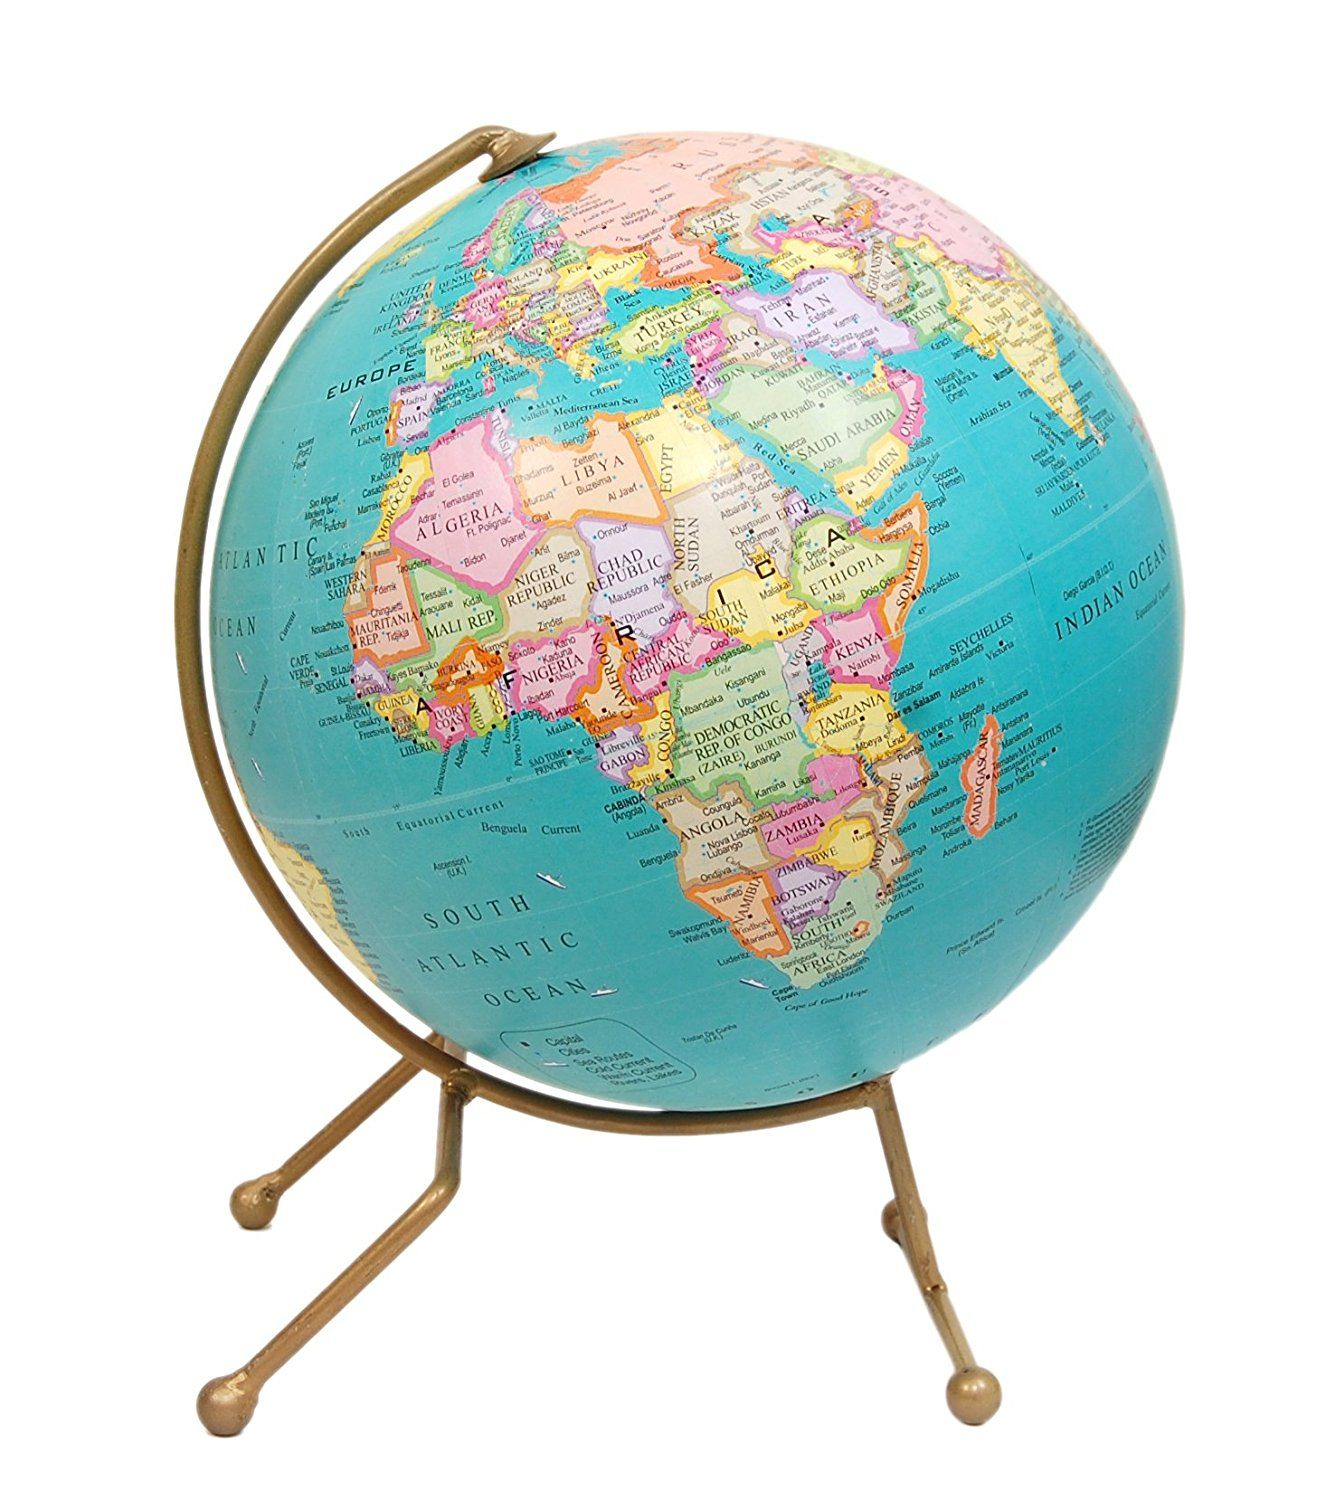 Amazon globes antique vintage handcrafted 10 inch world map amazon globes antique vintage handcrafted 10 inch world map globe gift gumiabroncs Image collections